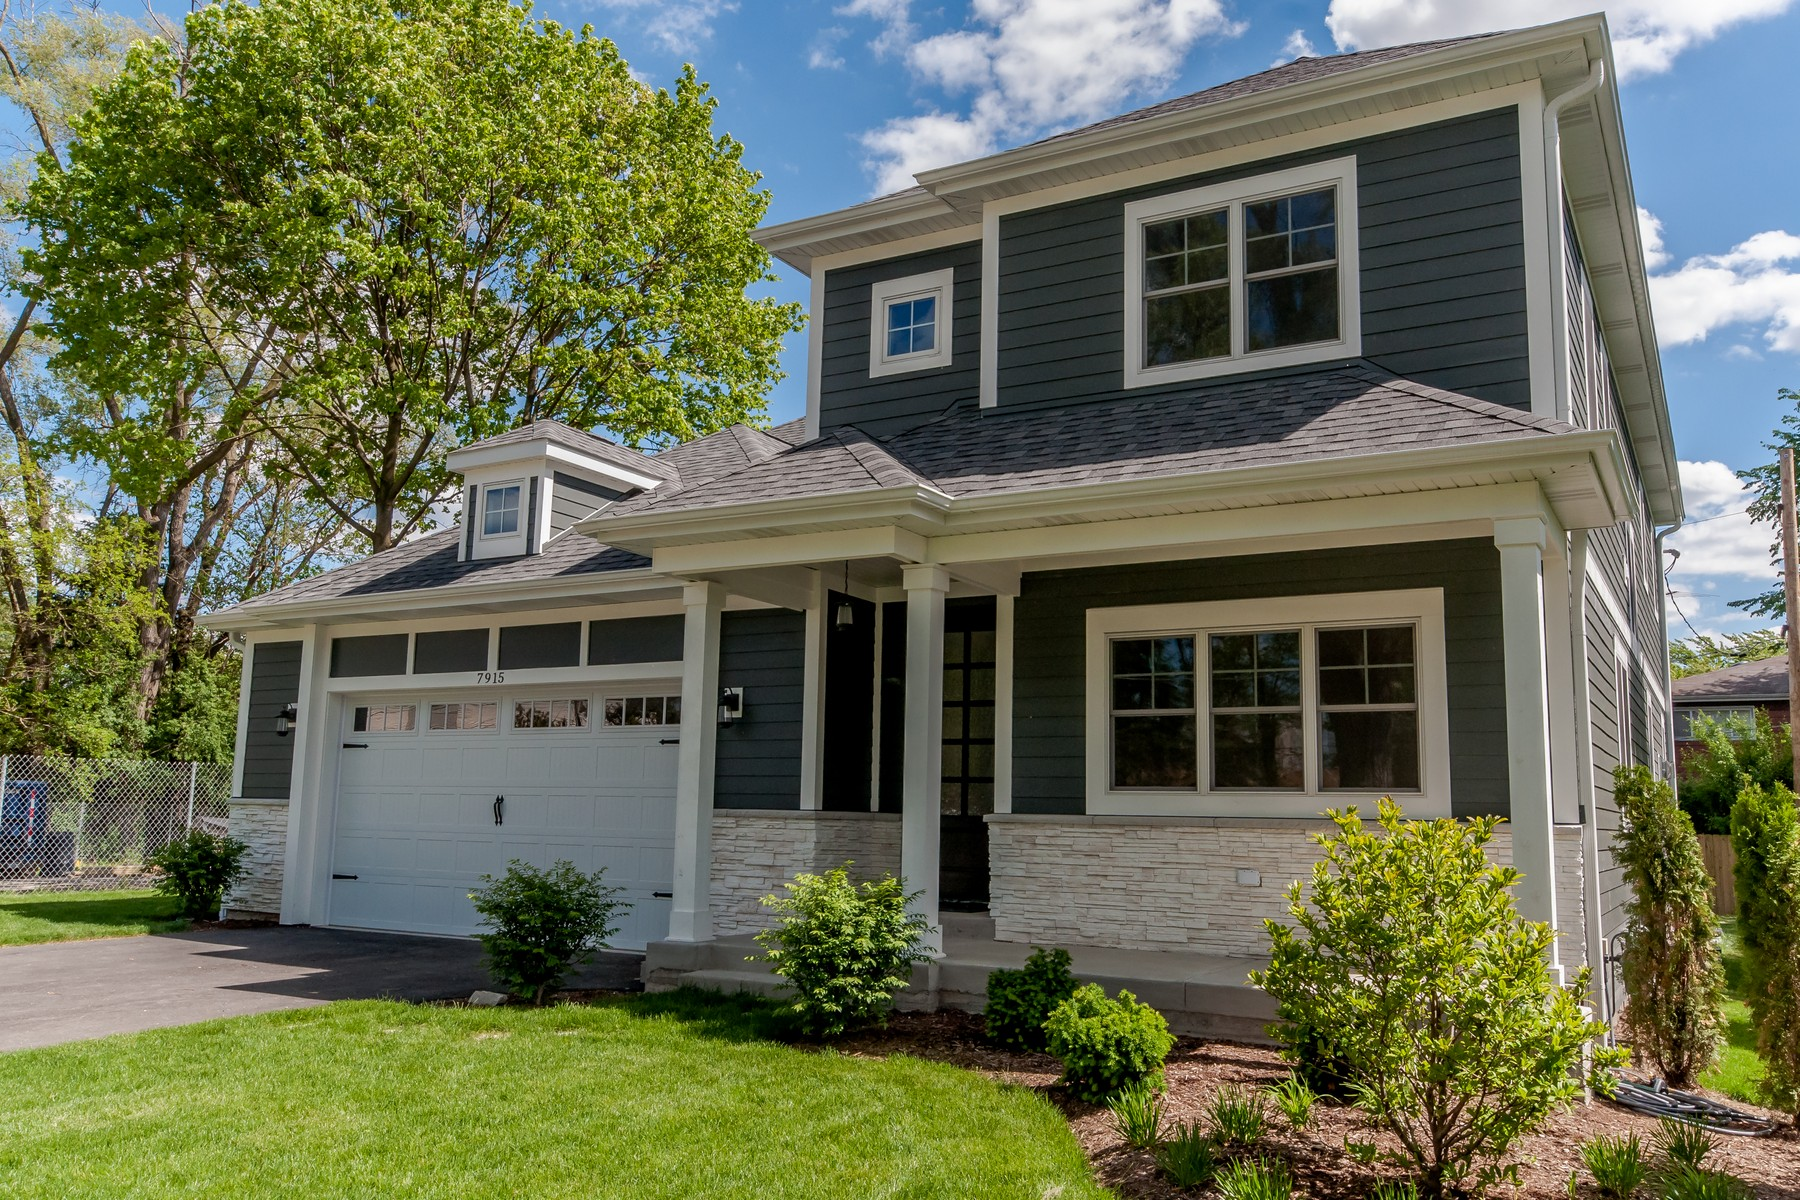 Single Family Home for Sale at Stunning New Construction 7915 Foster Street Morton Grove, Illinois, 60053 United States